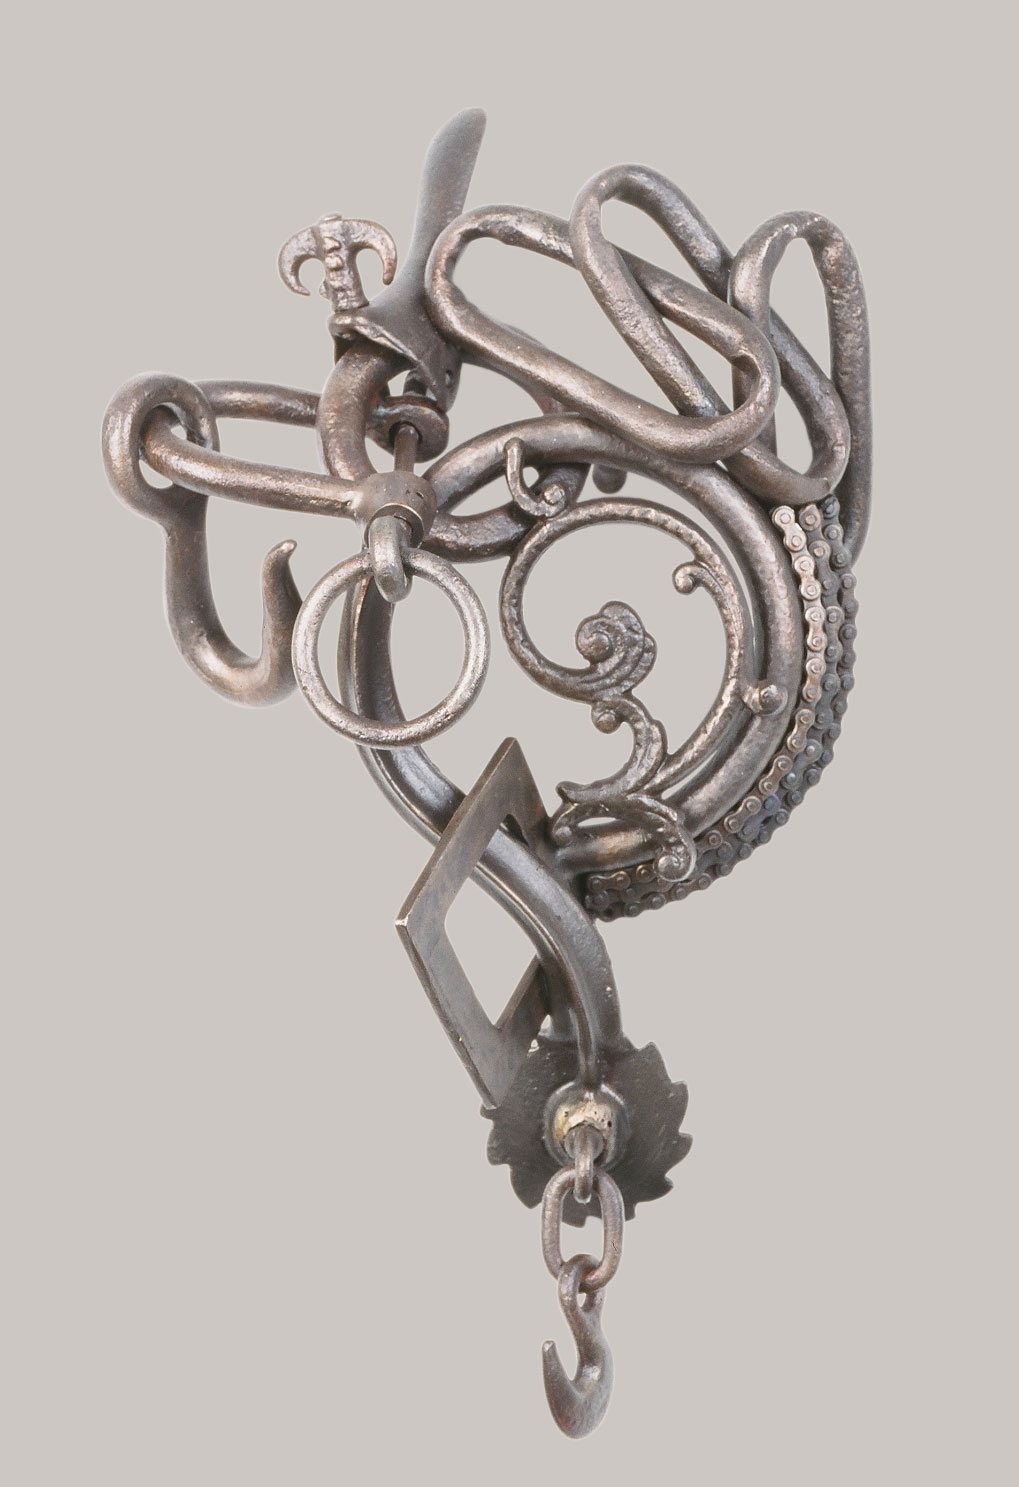 Wall Jewelry Sculptures by Craig Shankles